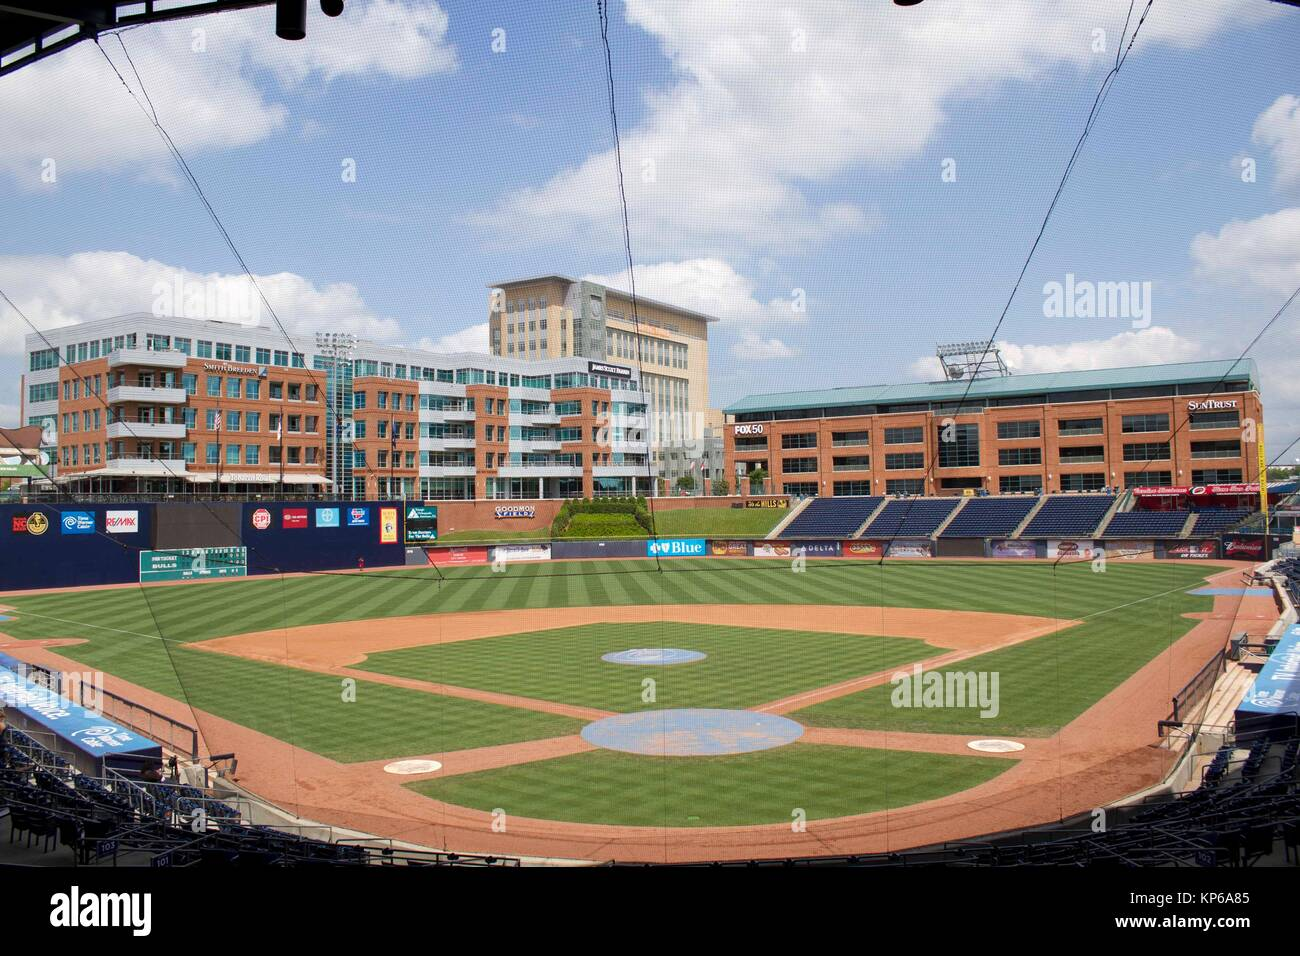 The Durham Bulls Park Stadium, Durham, North Carolina, USA - Stock Image